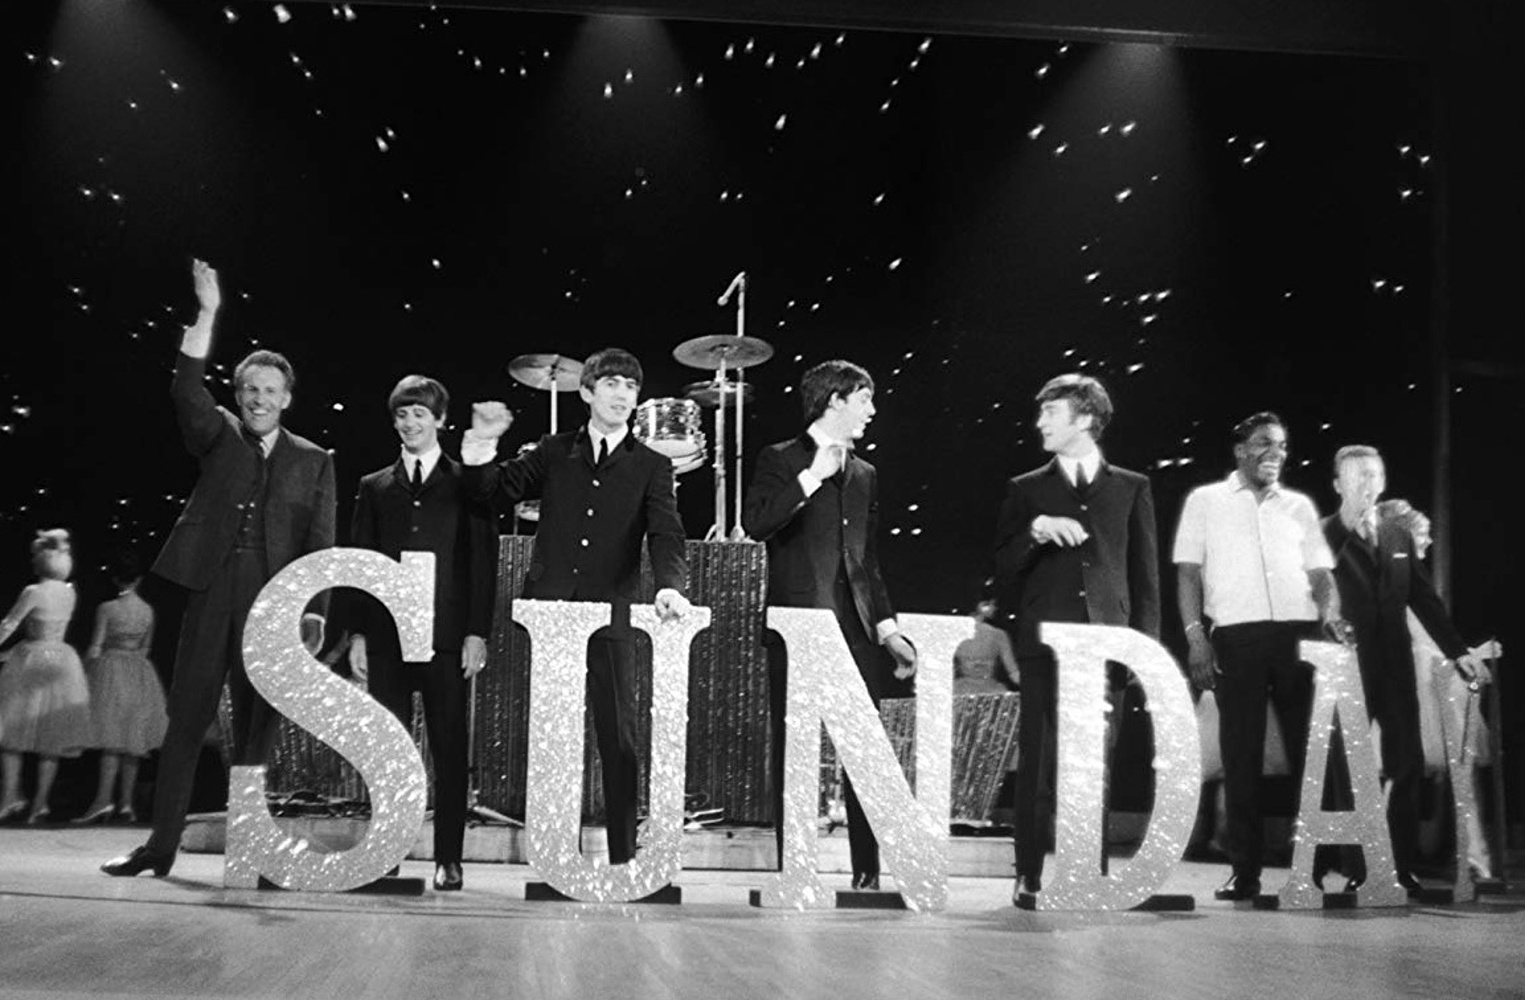 Sunday Night At The London Palladium / 13 октября 1963